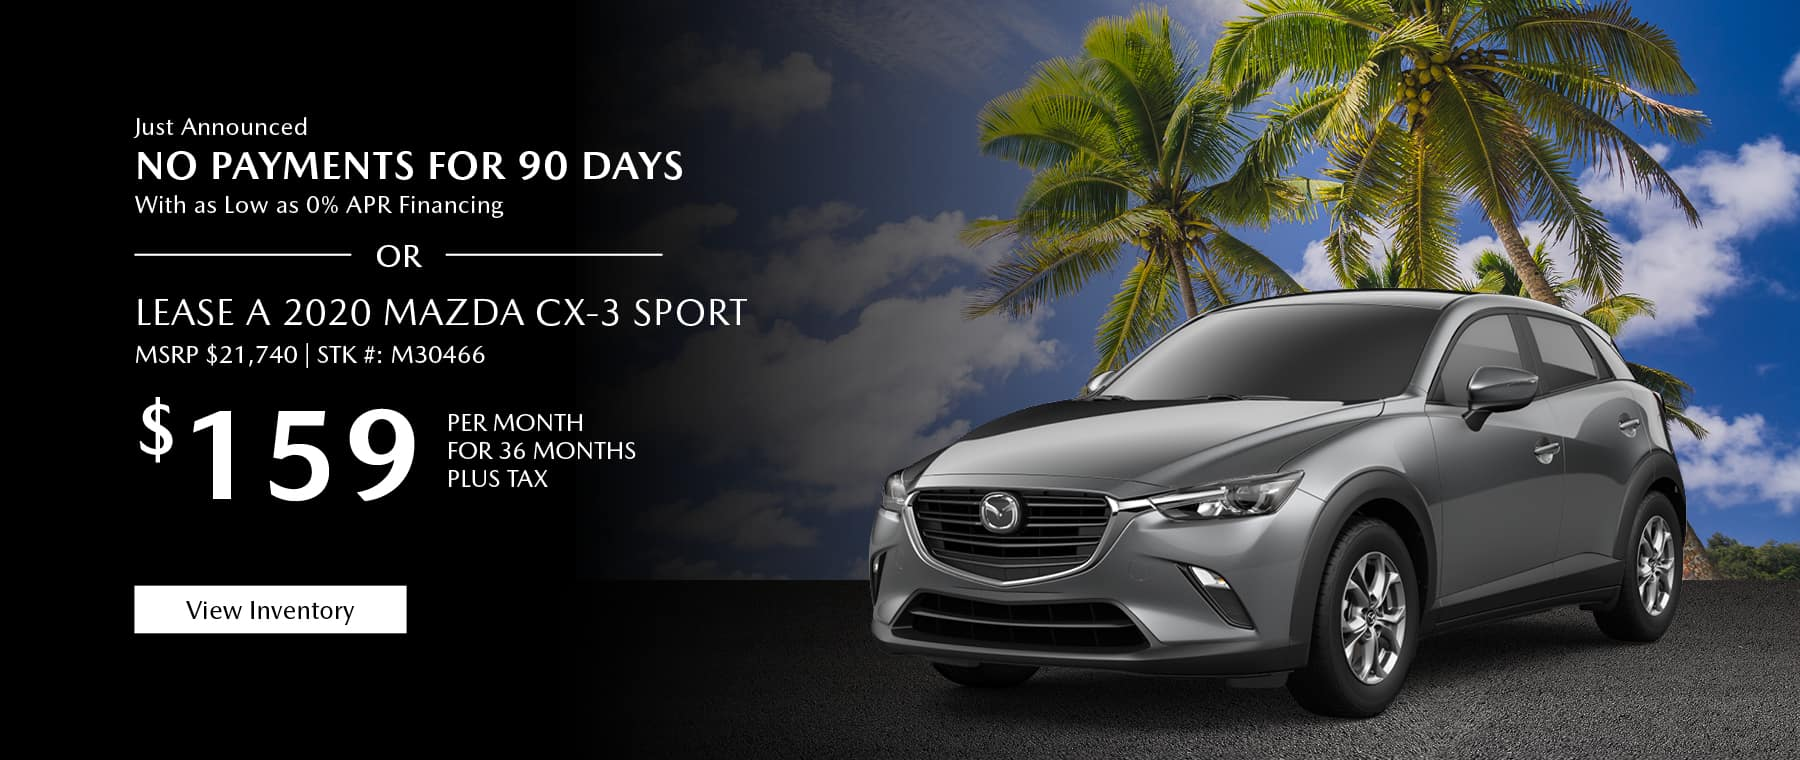 Just Announced, No payments for 90 days with as low as %0 APR financing, or lease the 2019 Mazda CX-3 Sport for $159 per month, plus tax. View inventory.